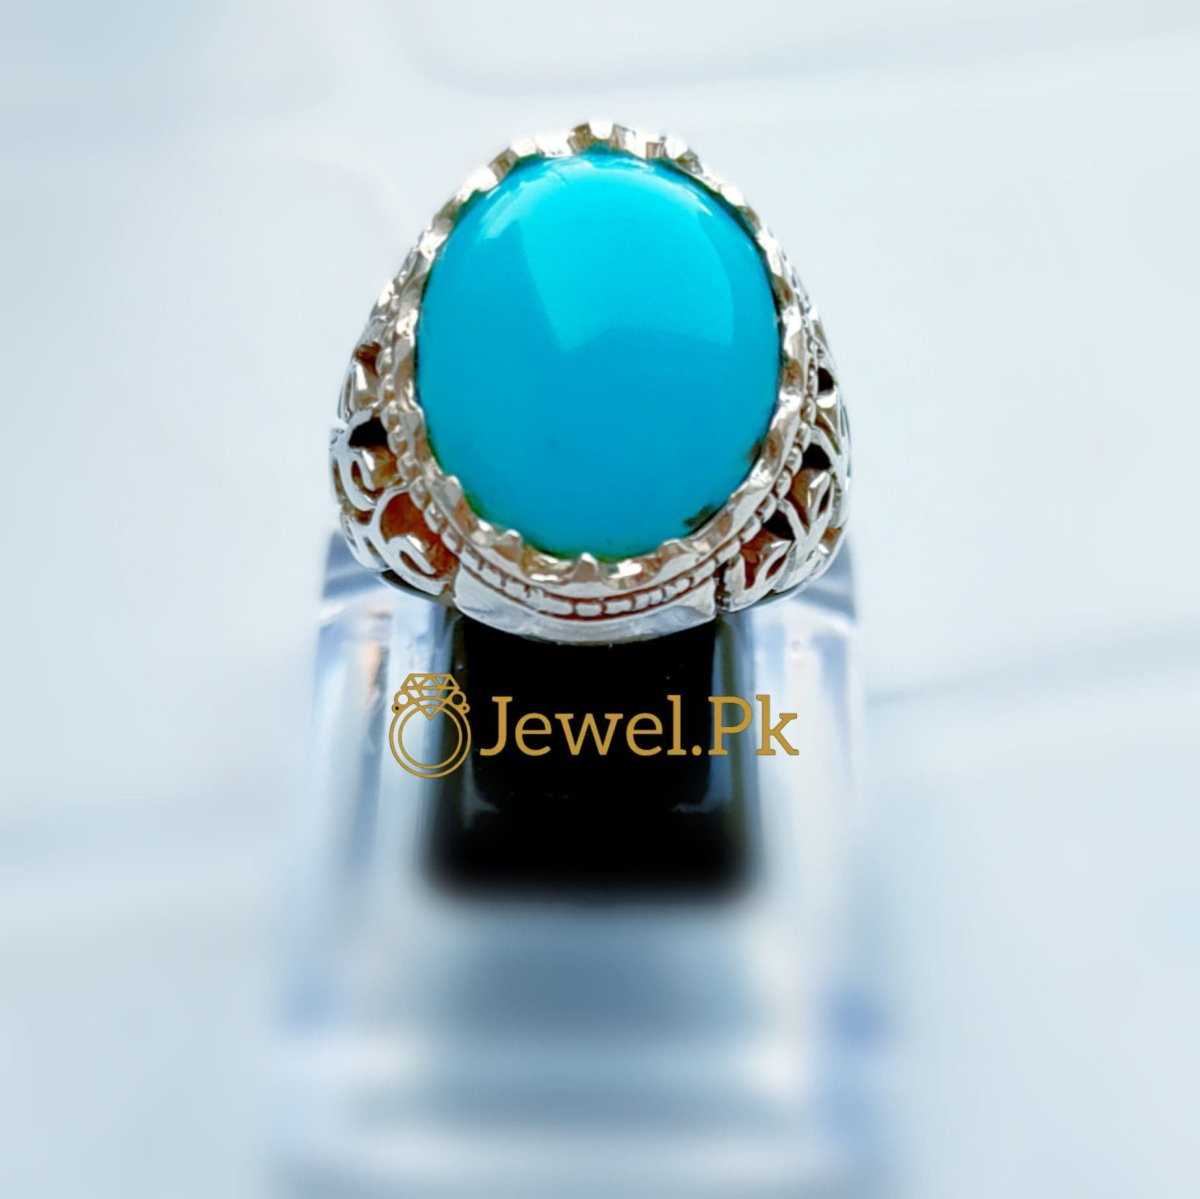 Turquoise Ring - 925 Silver Ring